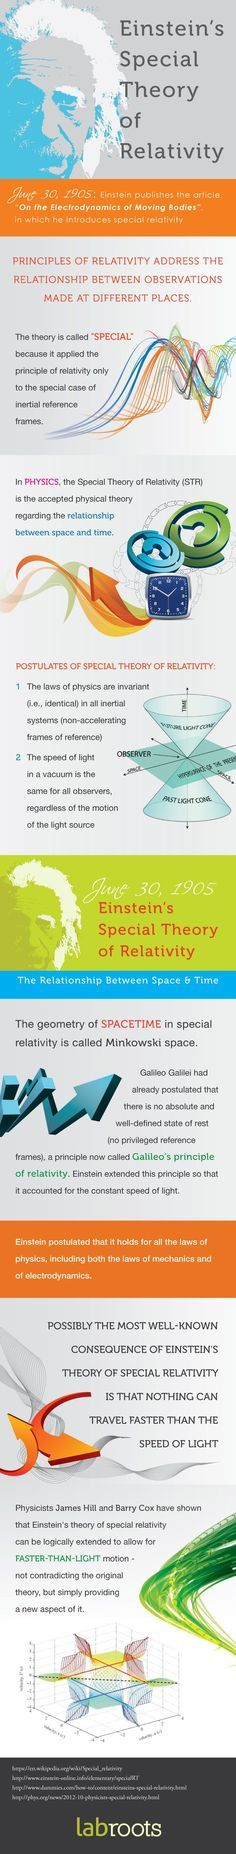 Einstein's Special Theory of Relativity Explained | LabRoots | Infographics